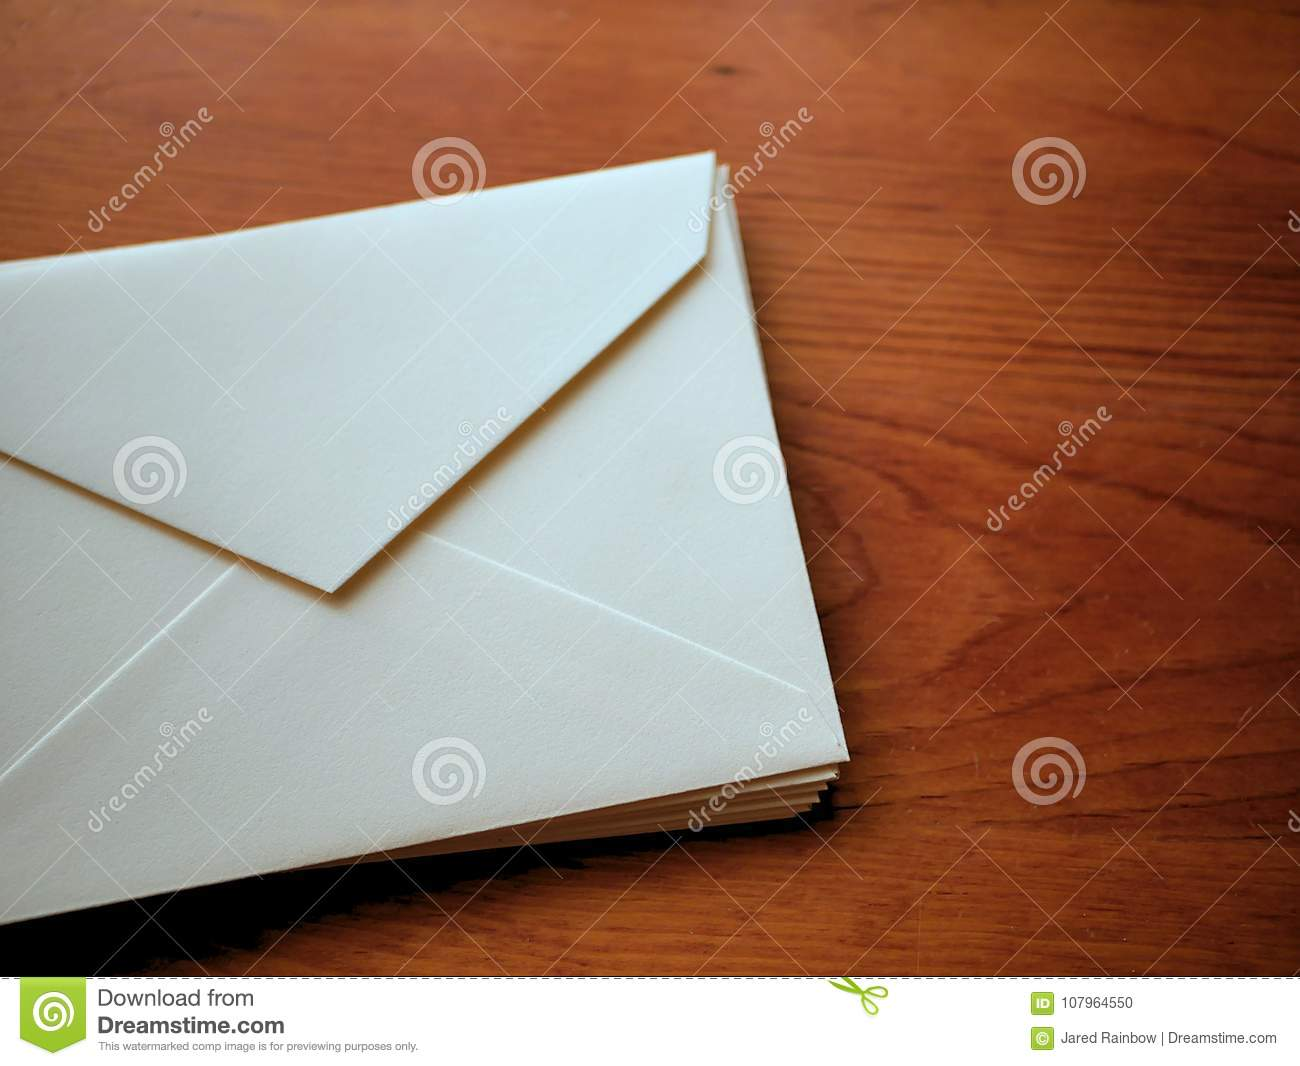 663214e699bb Envelopes And Stationery On Wood Grain Desk Background Stock Photo ...